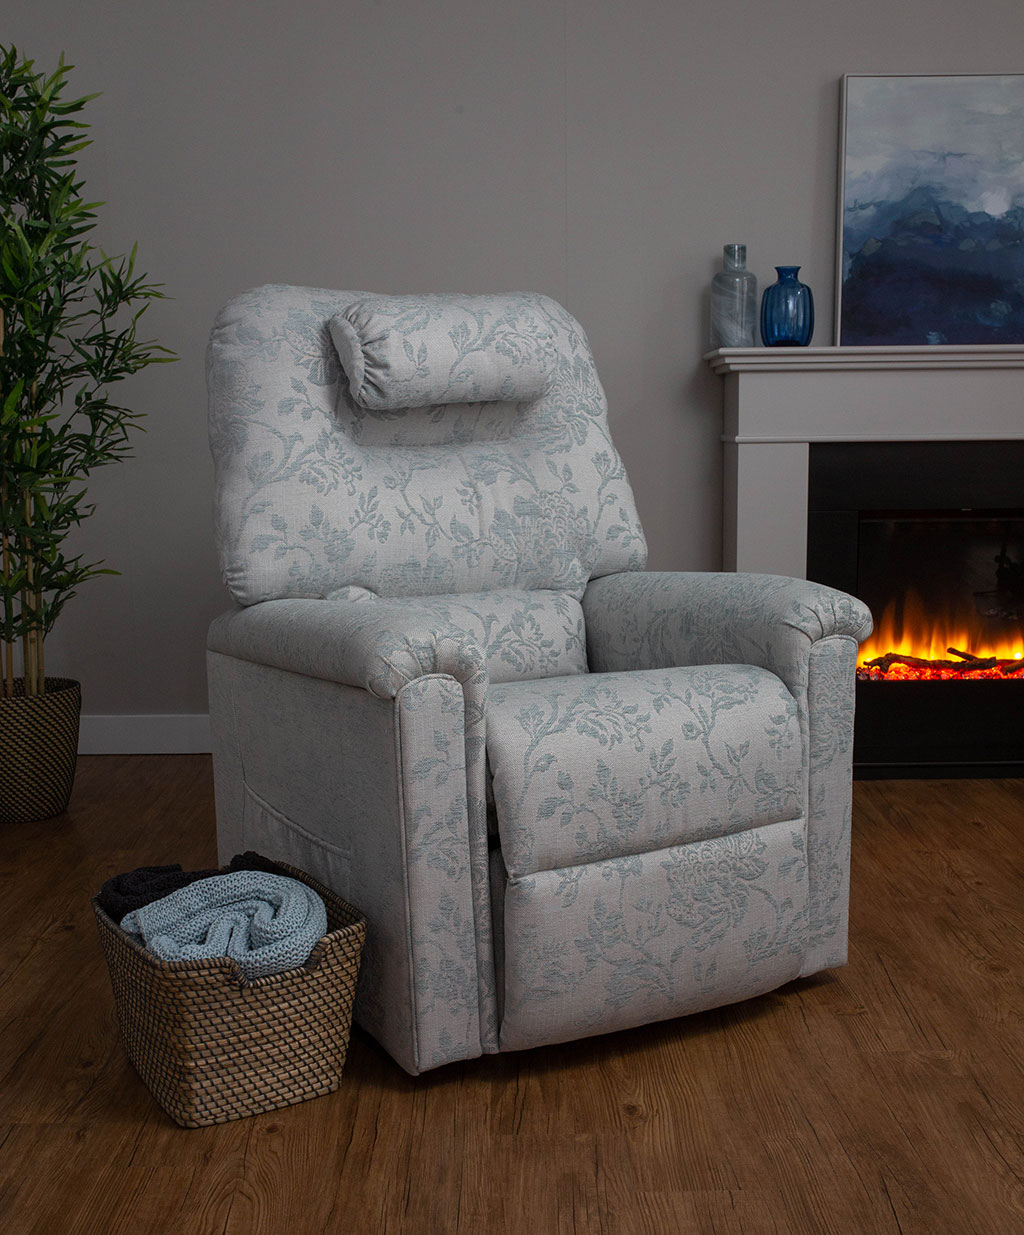 Blenheim riser and recline chair